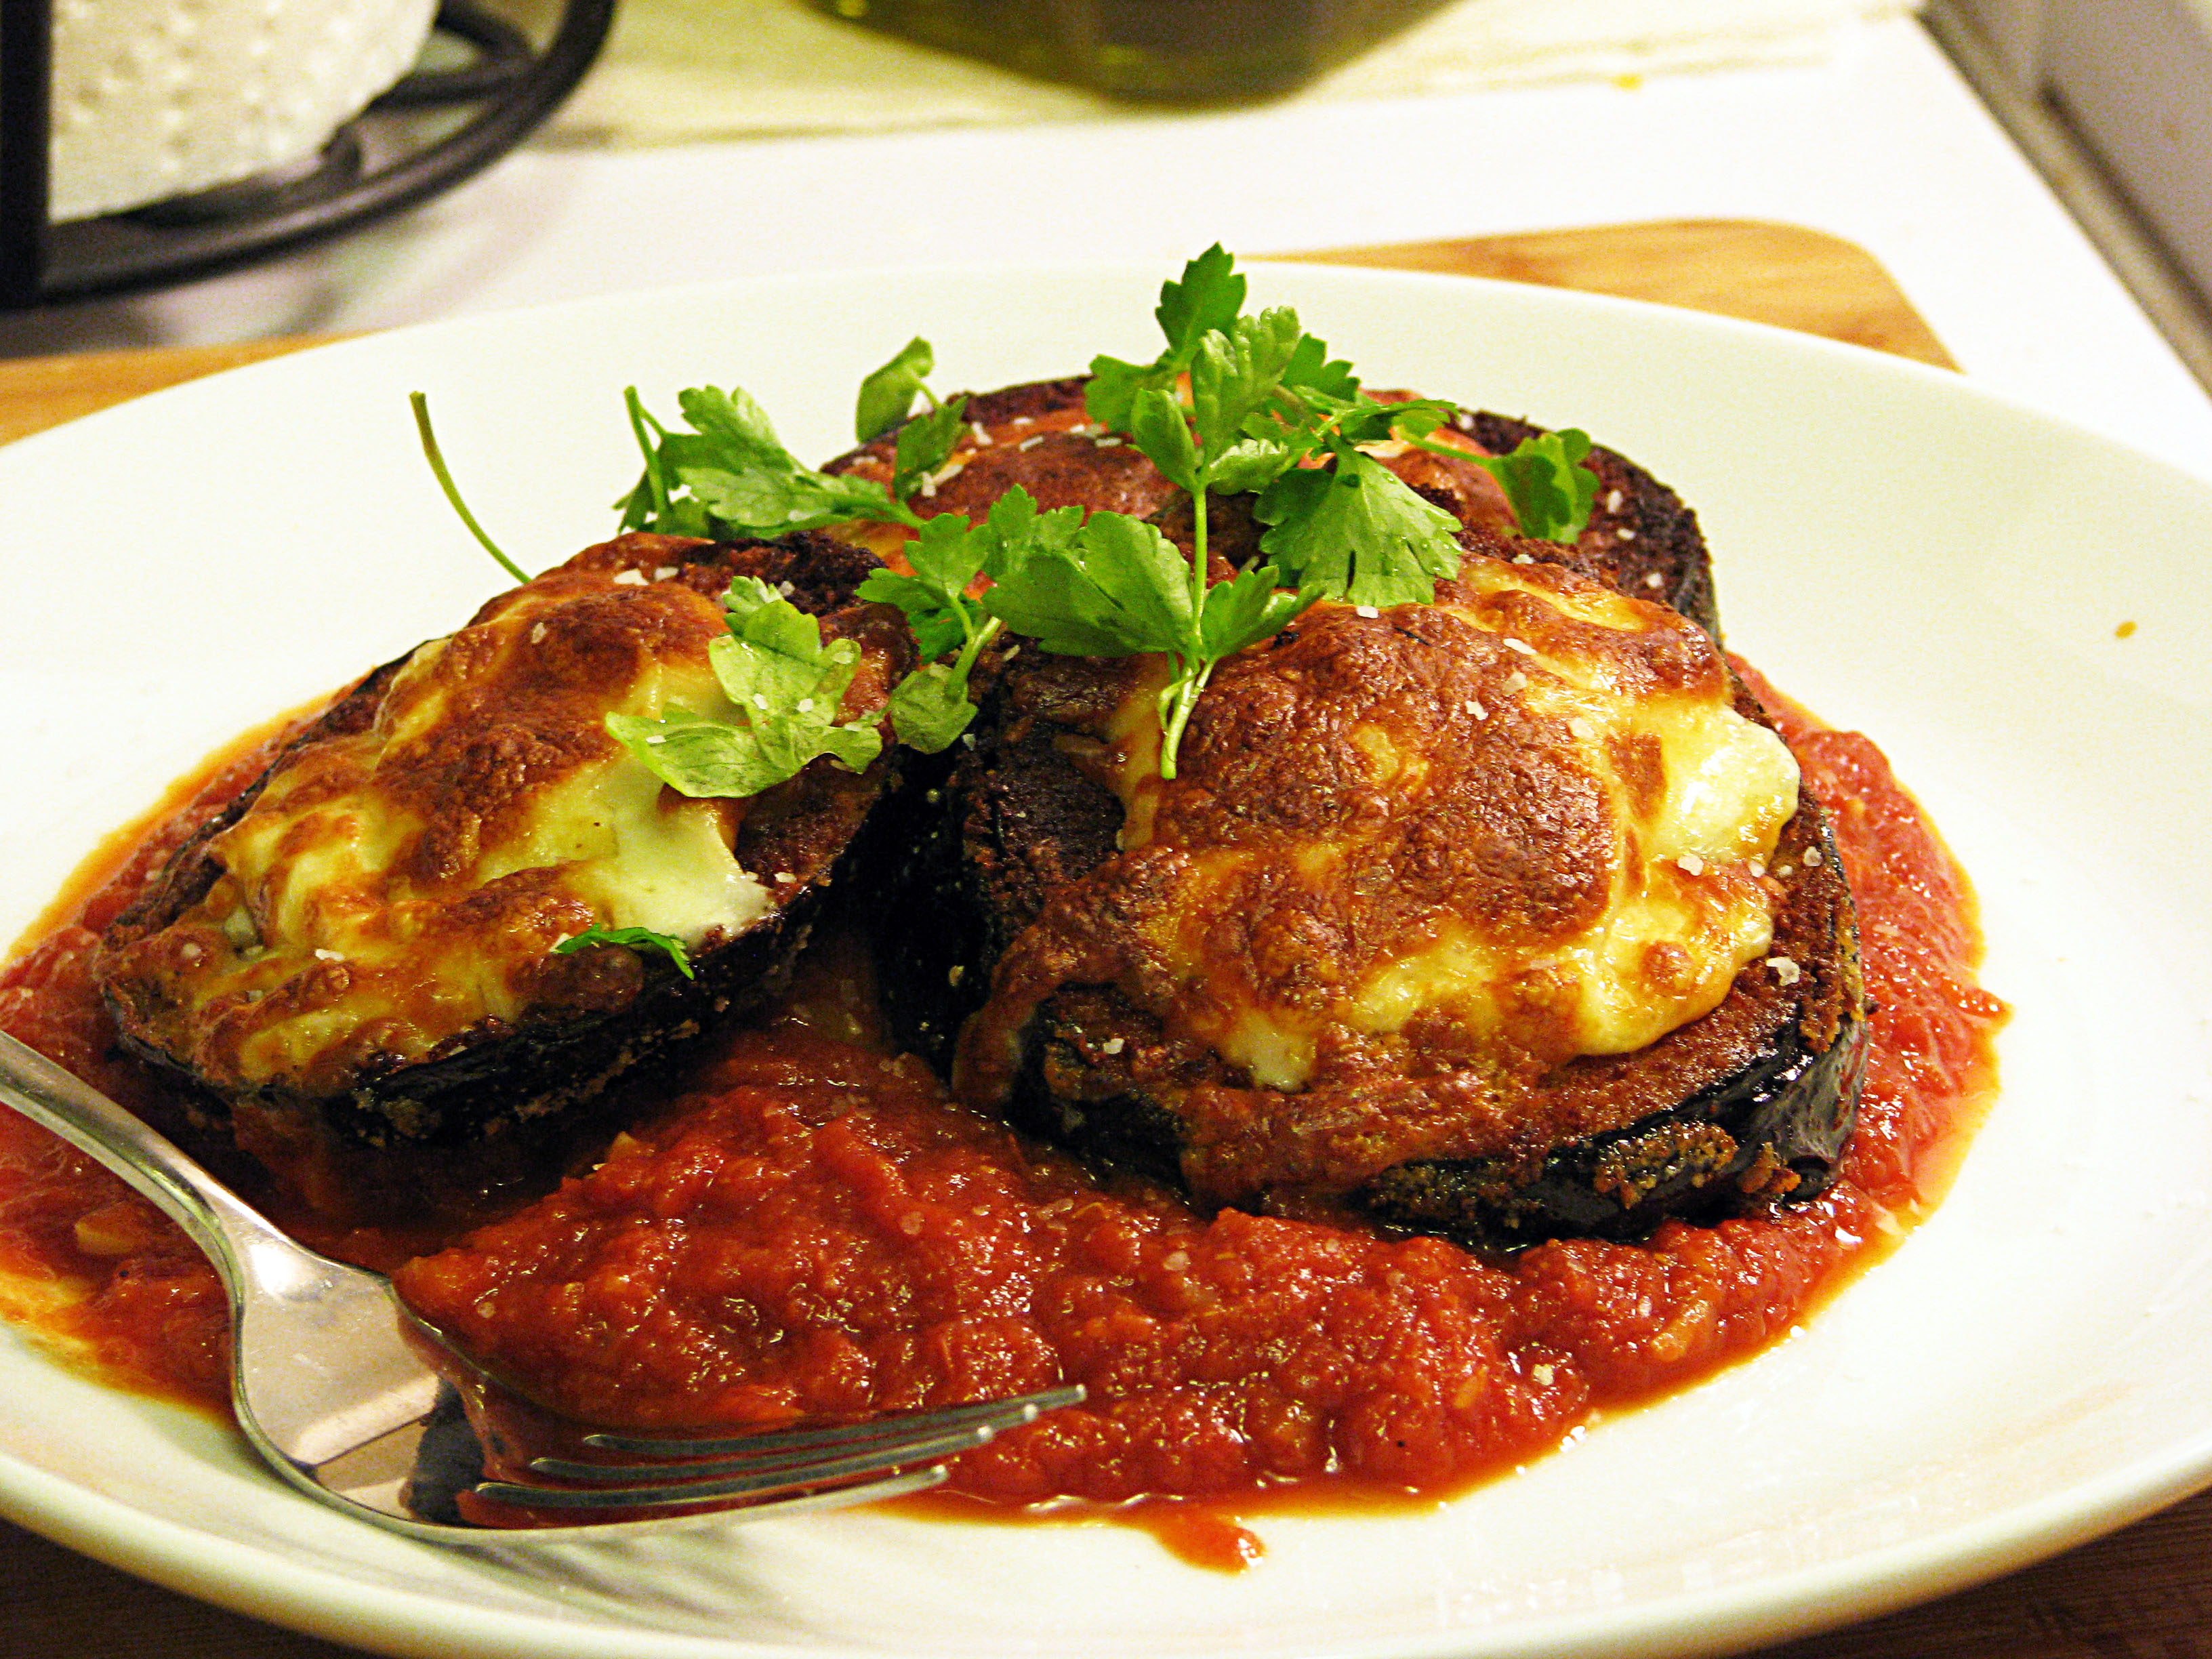 Eggplant Parmesan Recipe with Ontario's Own Sauce | Pure & Simple